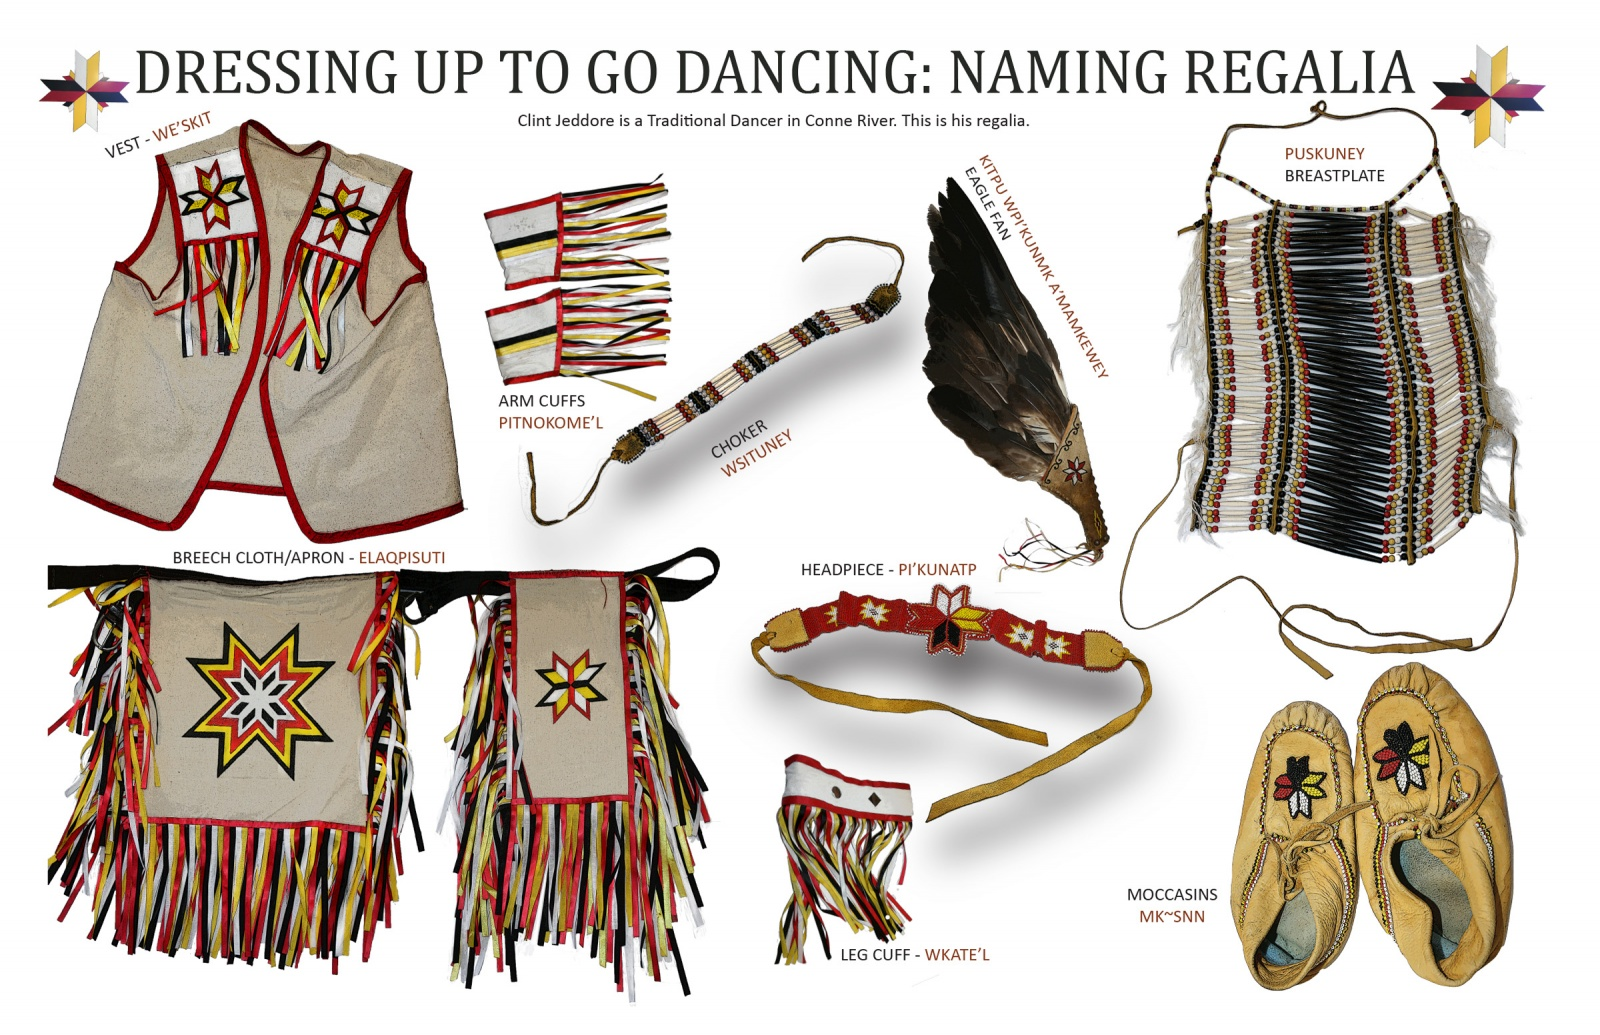 Dressing Up to Go Dancing: Naming Regalia